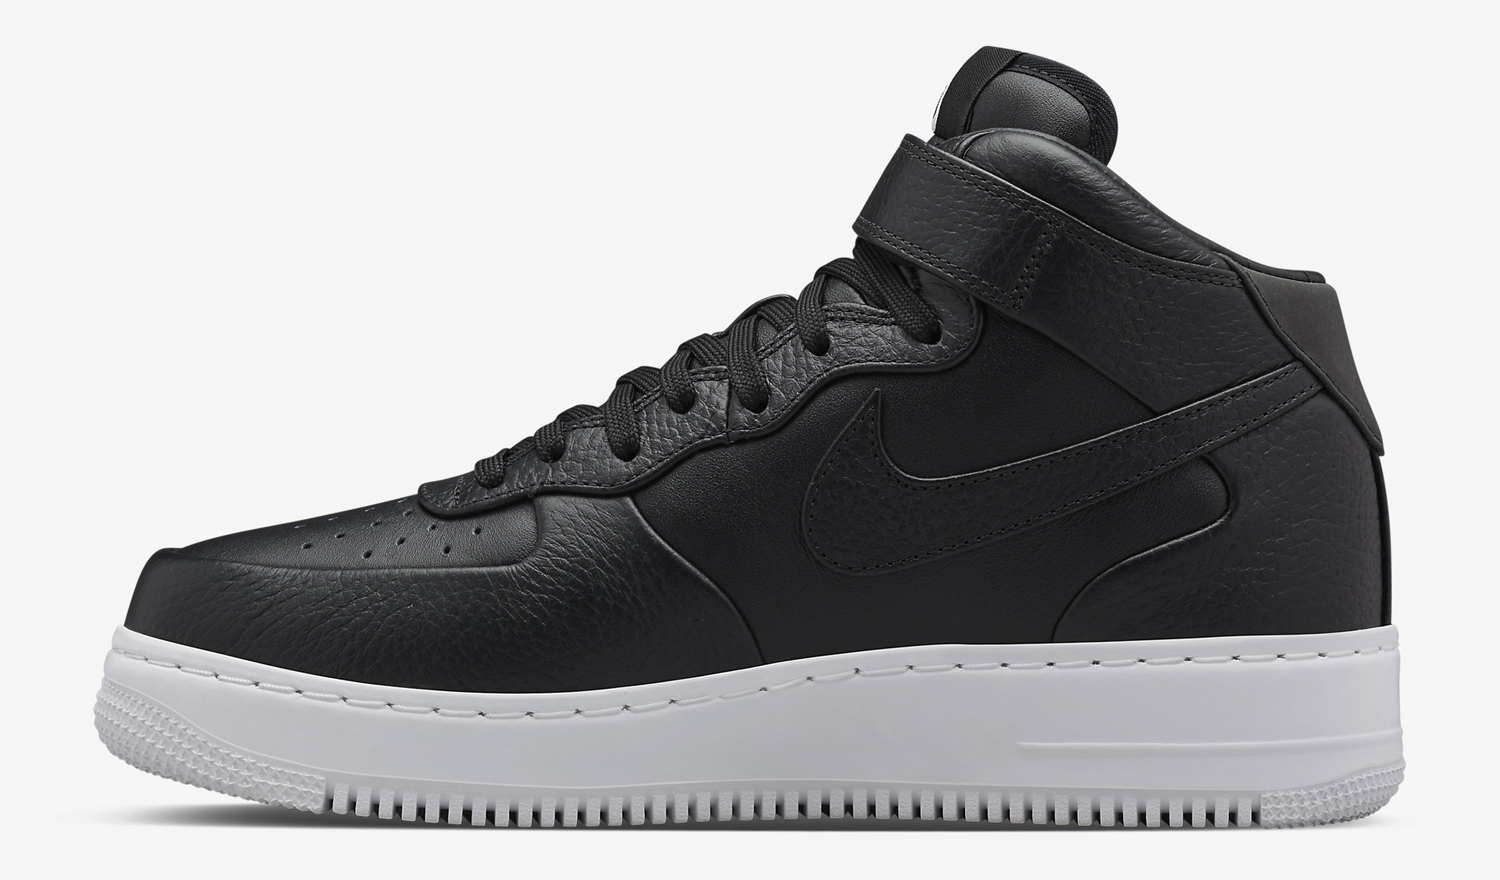 super popular f1184 e3848 NikeLab s Air Force 1 Mid Pack Releases on Saturday   Sole Collector